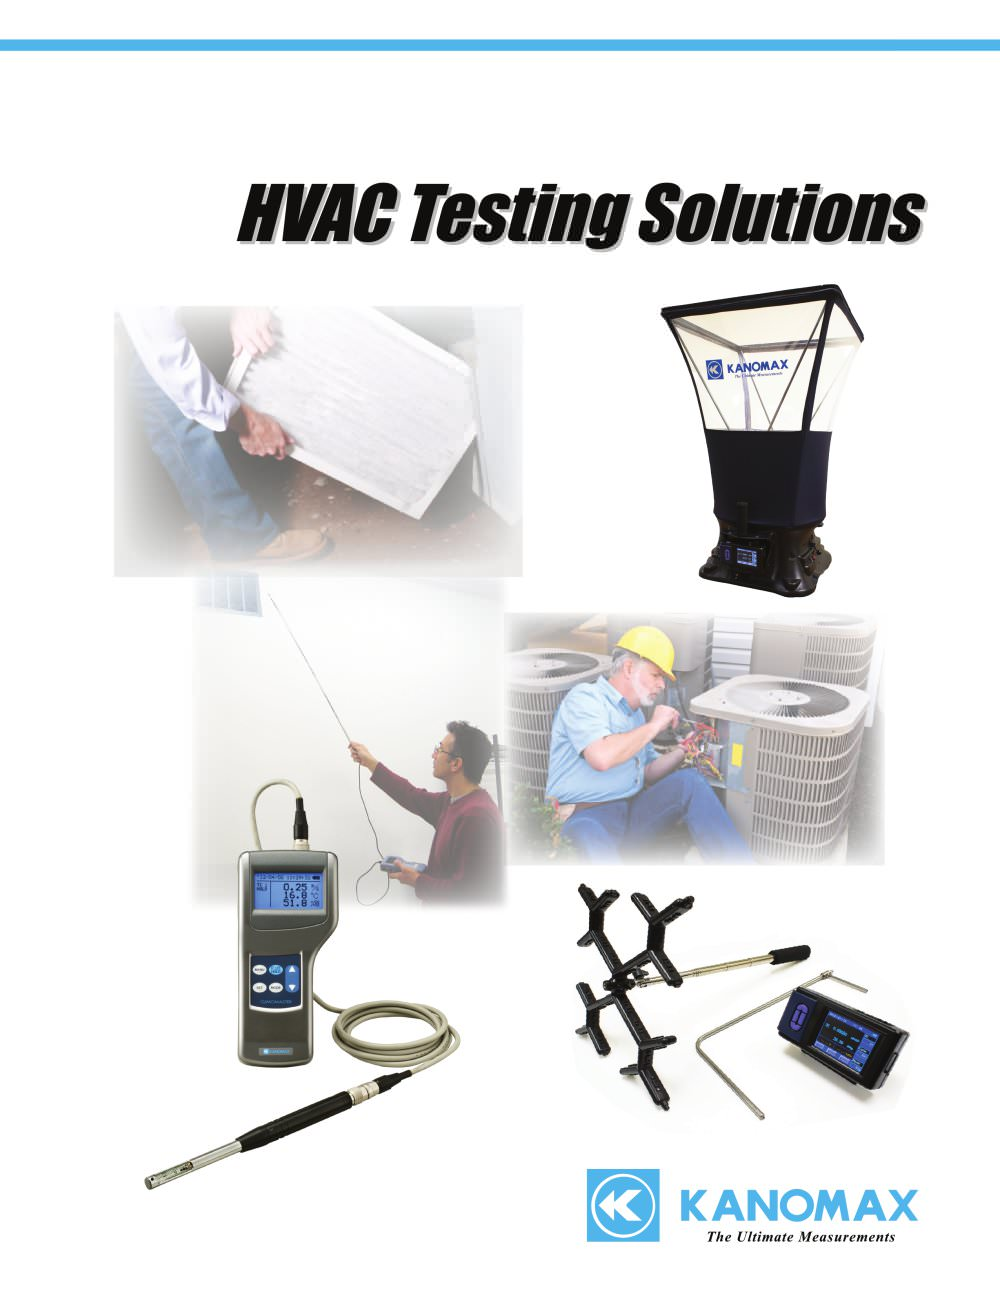 medium resolution of kanomax hvac testing solutions 2014 1 8 pages